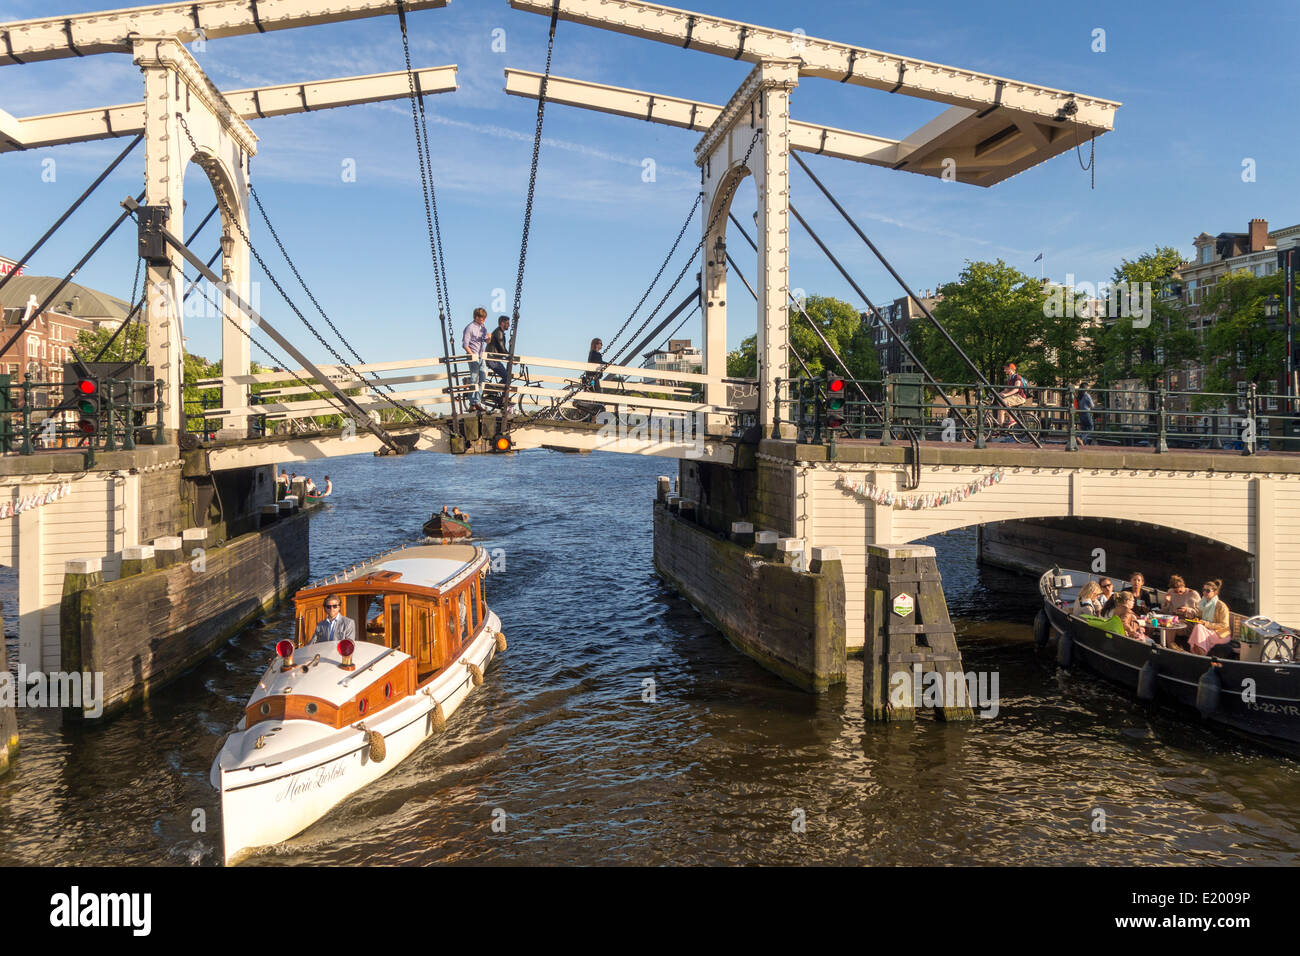 Amsterdam small vintage private VIP canal cruise boat with Magere Brug, Skinny Bridge on the Amstel River - Stock Image